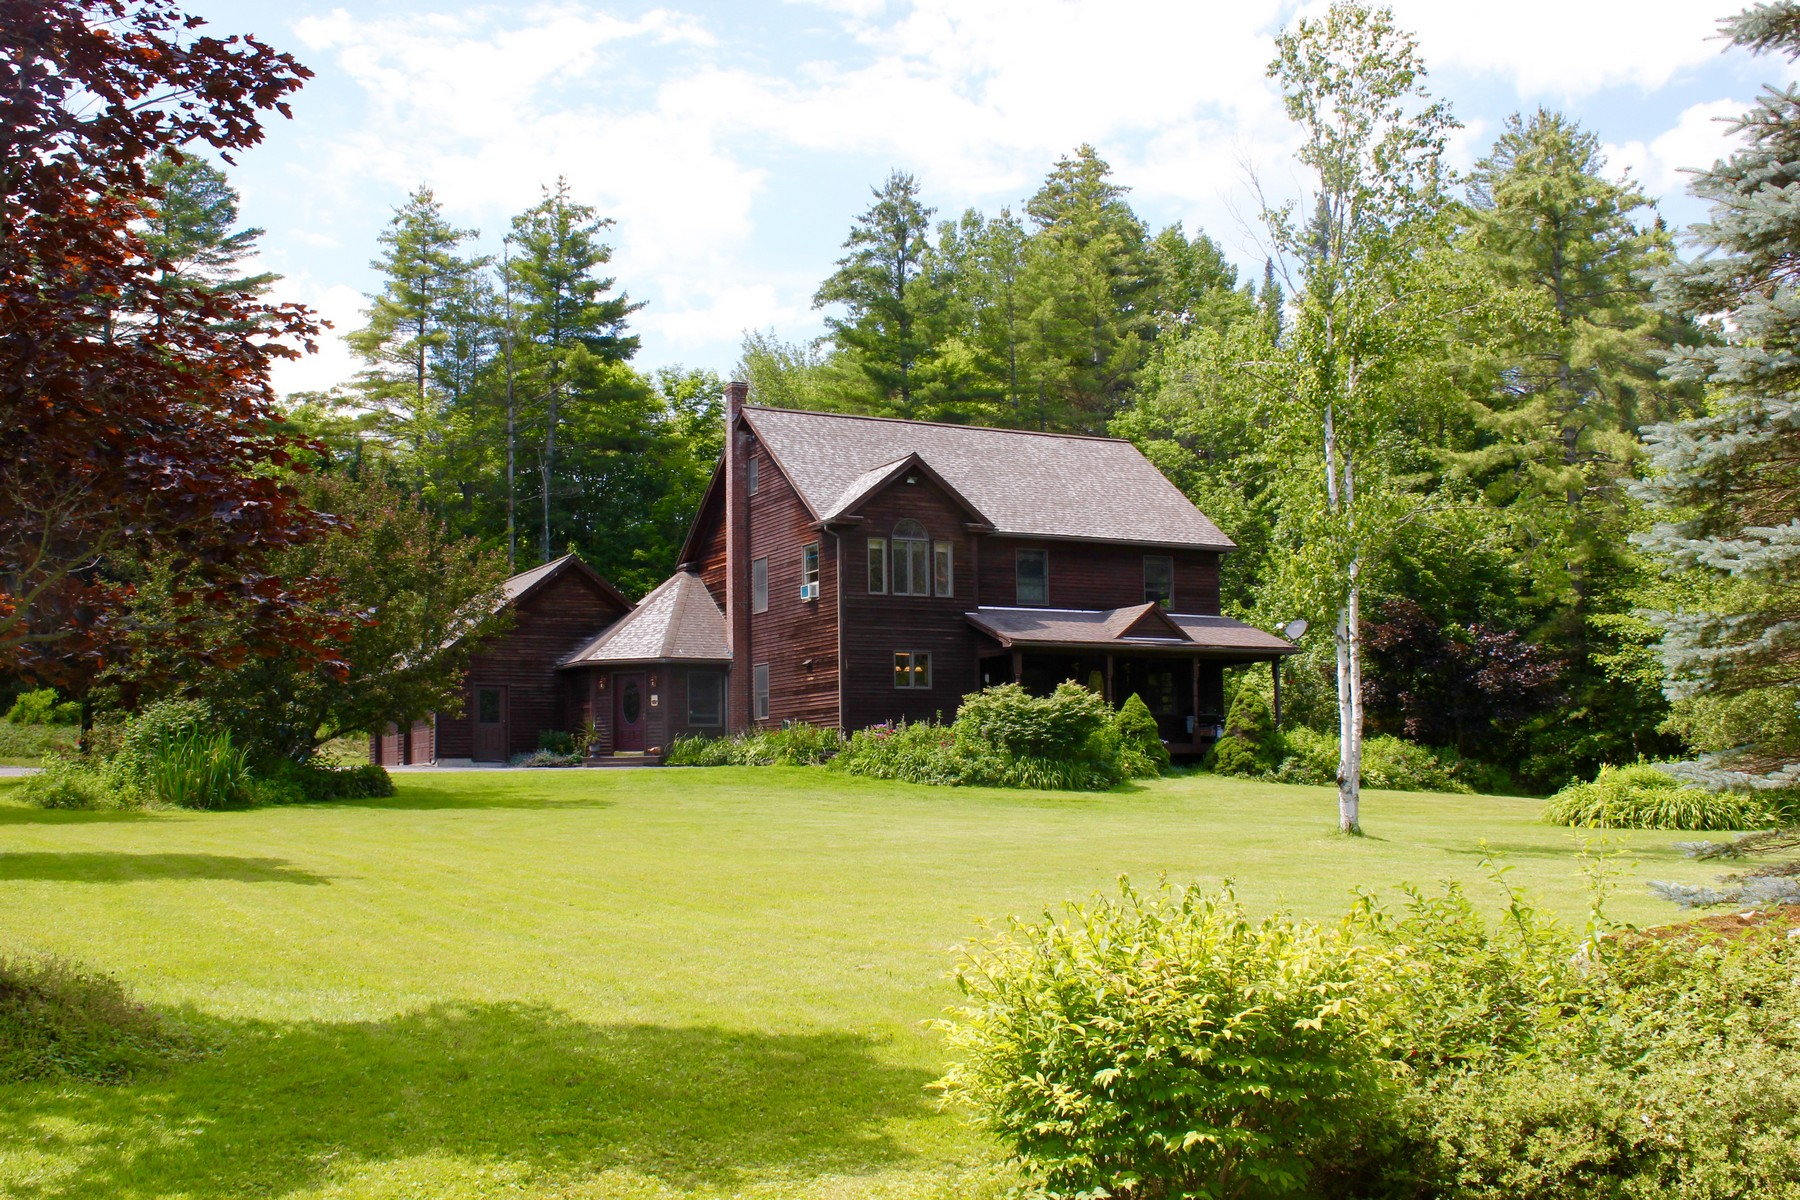 Single Family Home for Sale at Contemporary Farmhouse 2041 Russellville Rd Shrewsbury, Vermont, 05738 United States